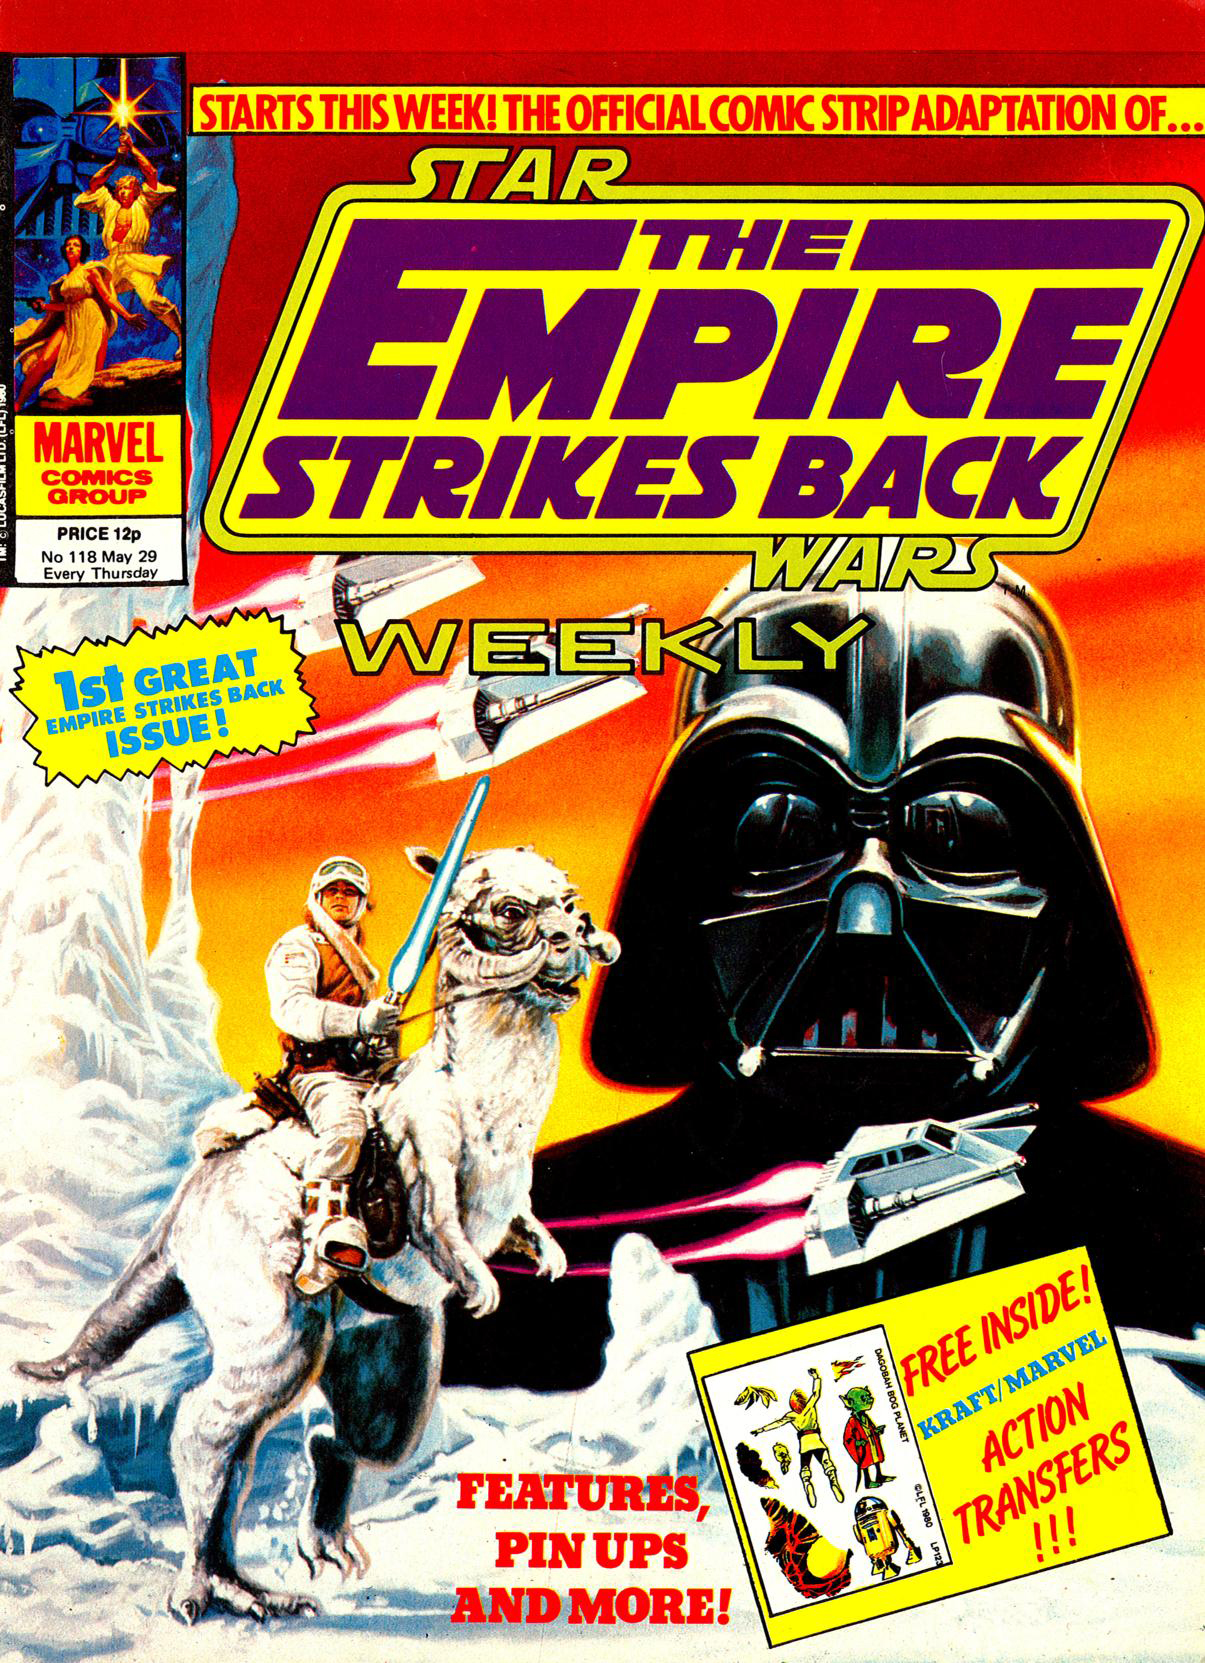 Star Wars: The Empire Strikes Back (Marvel 1977)